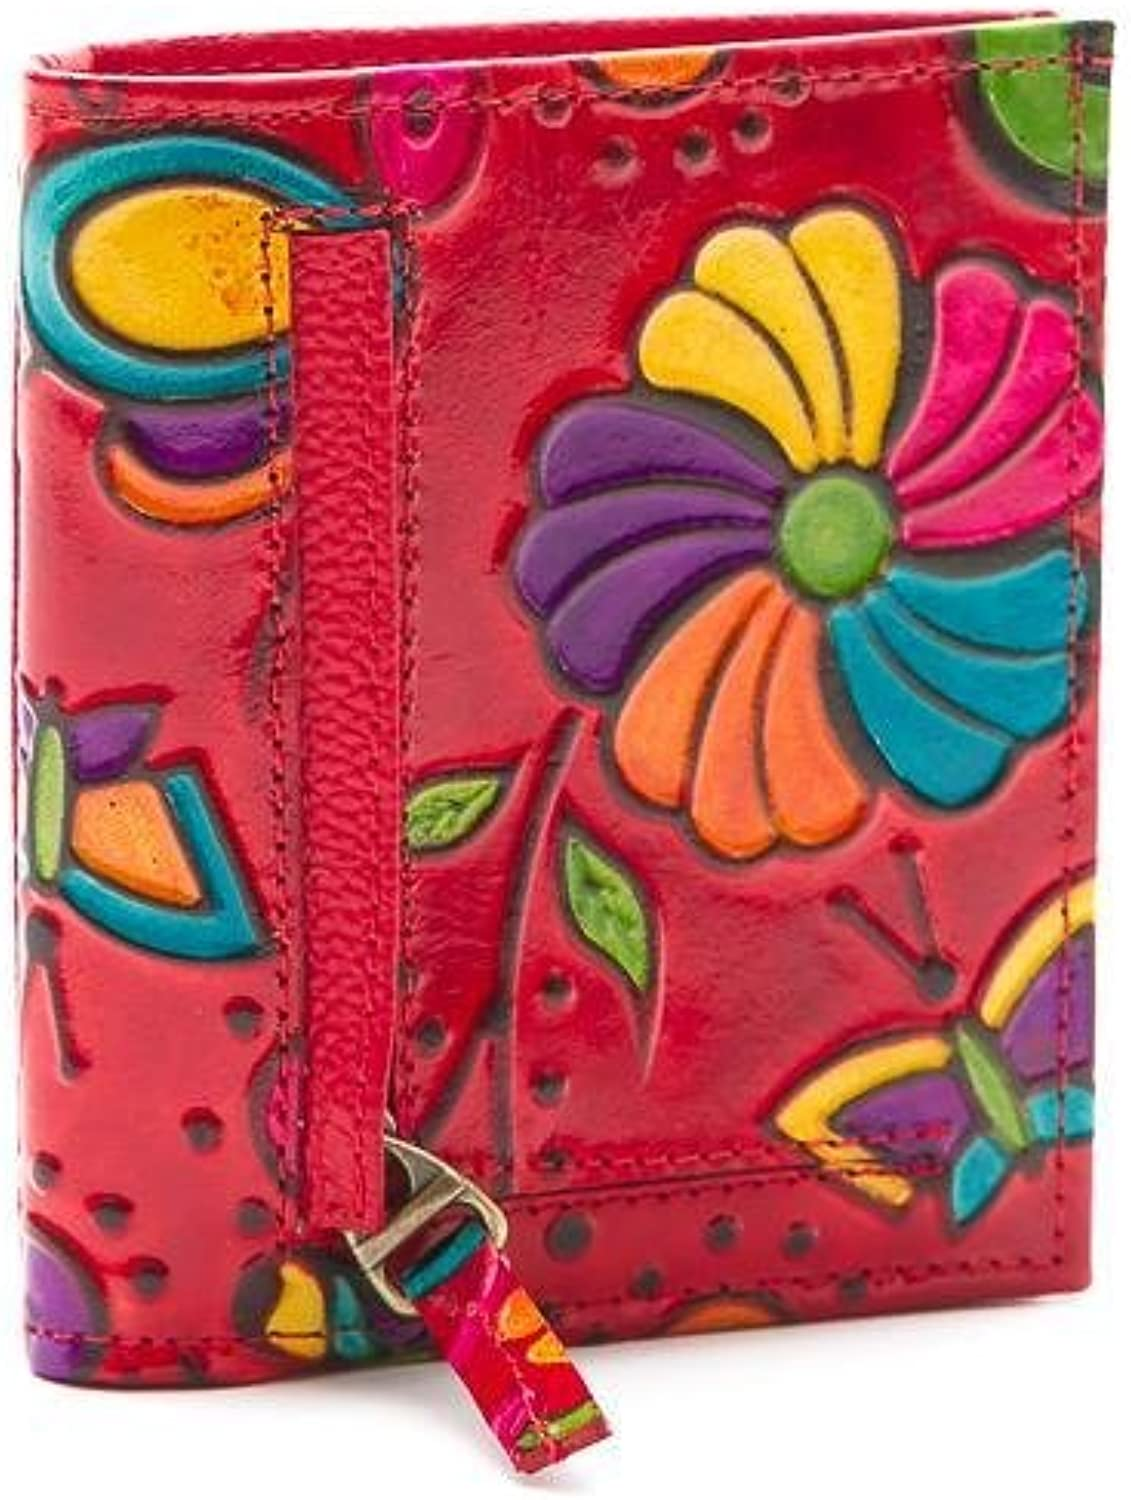 Gaspy Idalee Women's Wallet  RFID  Hand Painted  Hand Engraved  Handmade from 100 Percent Colombian Cow Leather